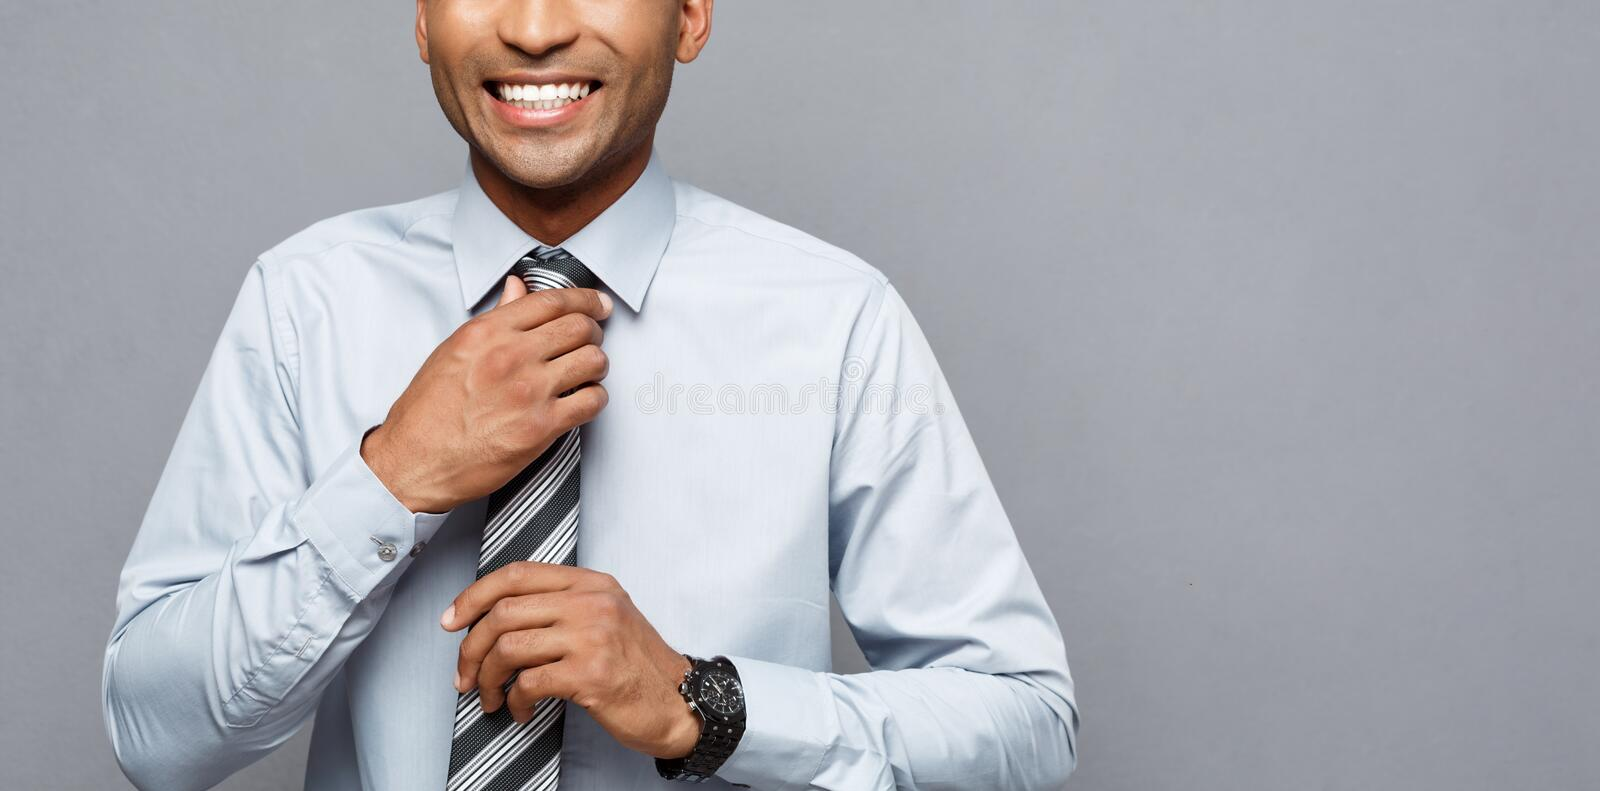 Business Concept - Happy confident professional african american businessman posing over grey background. royalty free stock photo